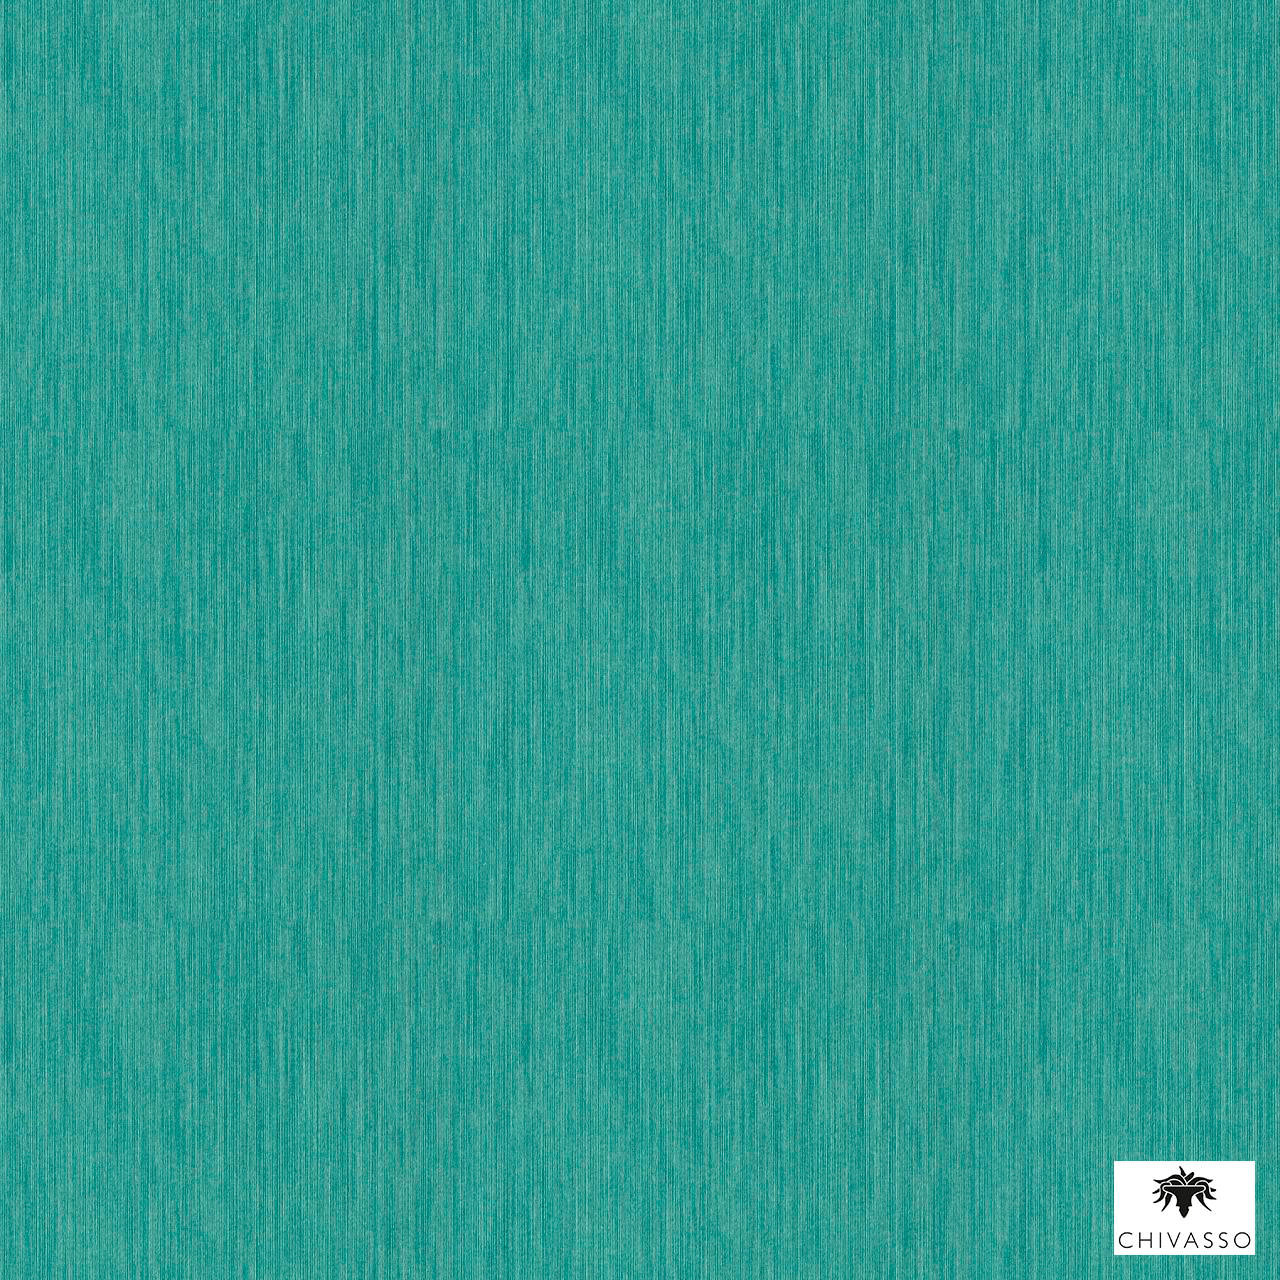 Chivasso - Colour Block - Ch9112-083  | Wallpaper, Wallcovering - Plain, Turquoise, Teal, Domestic Use